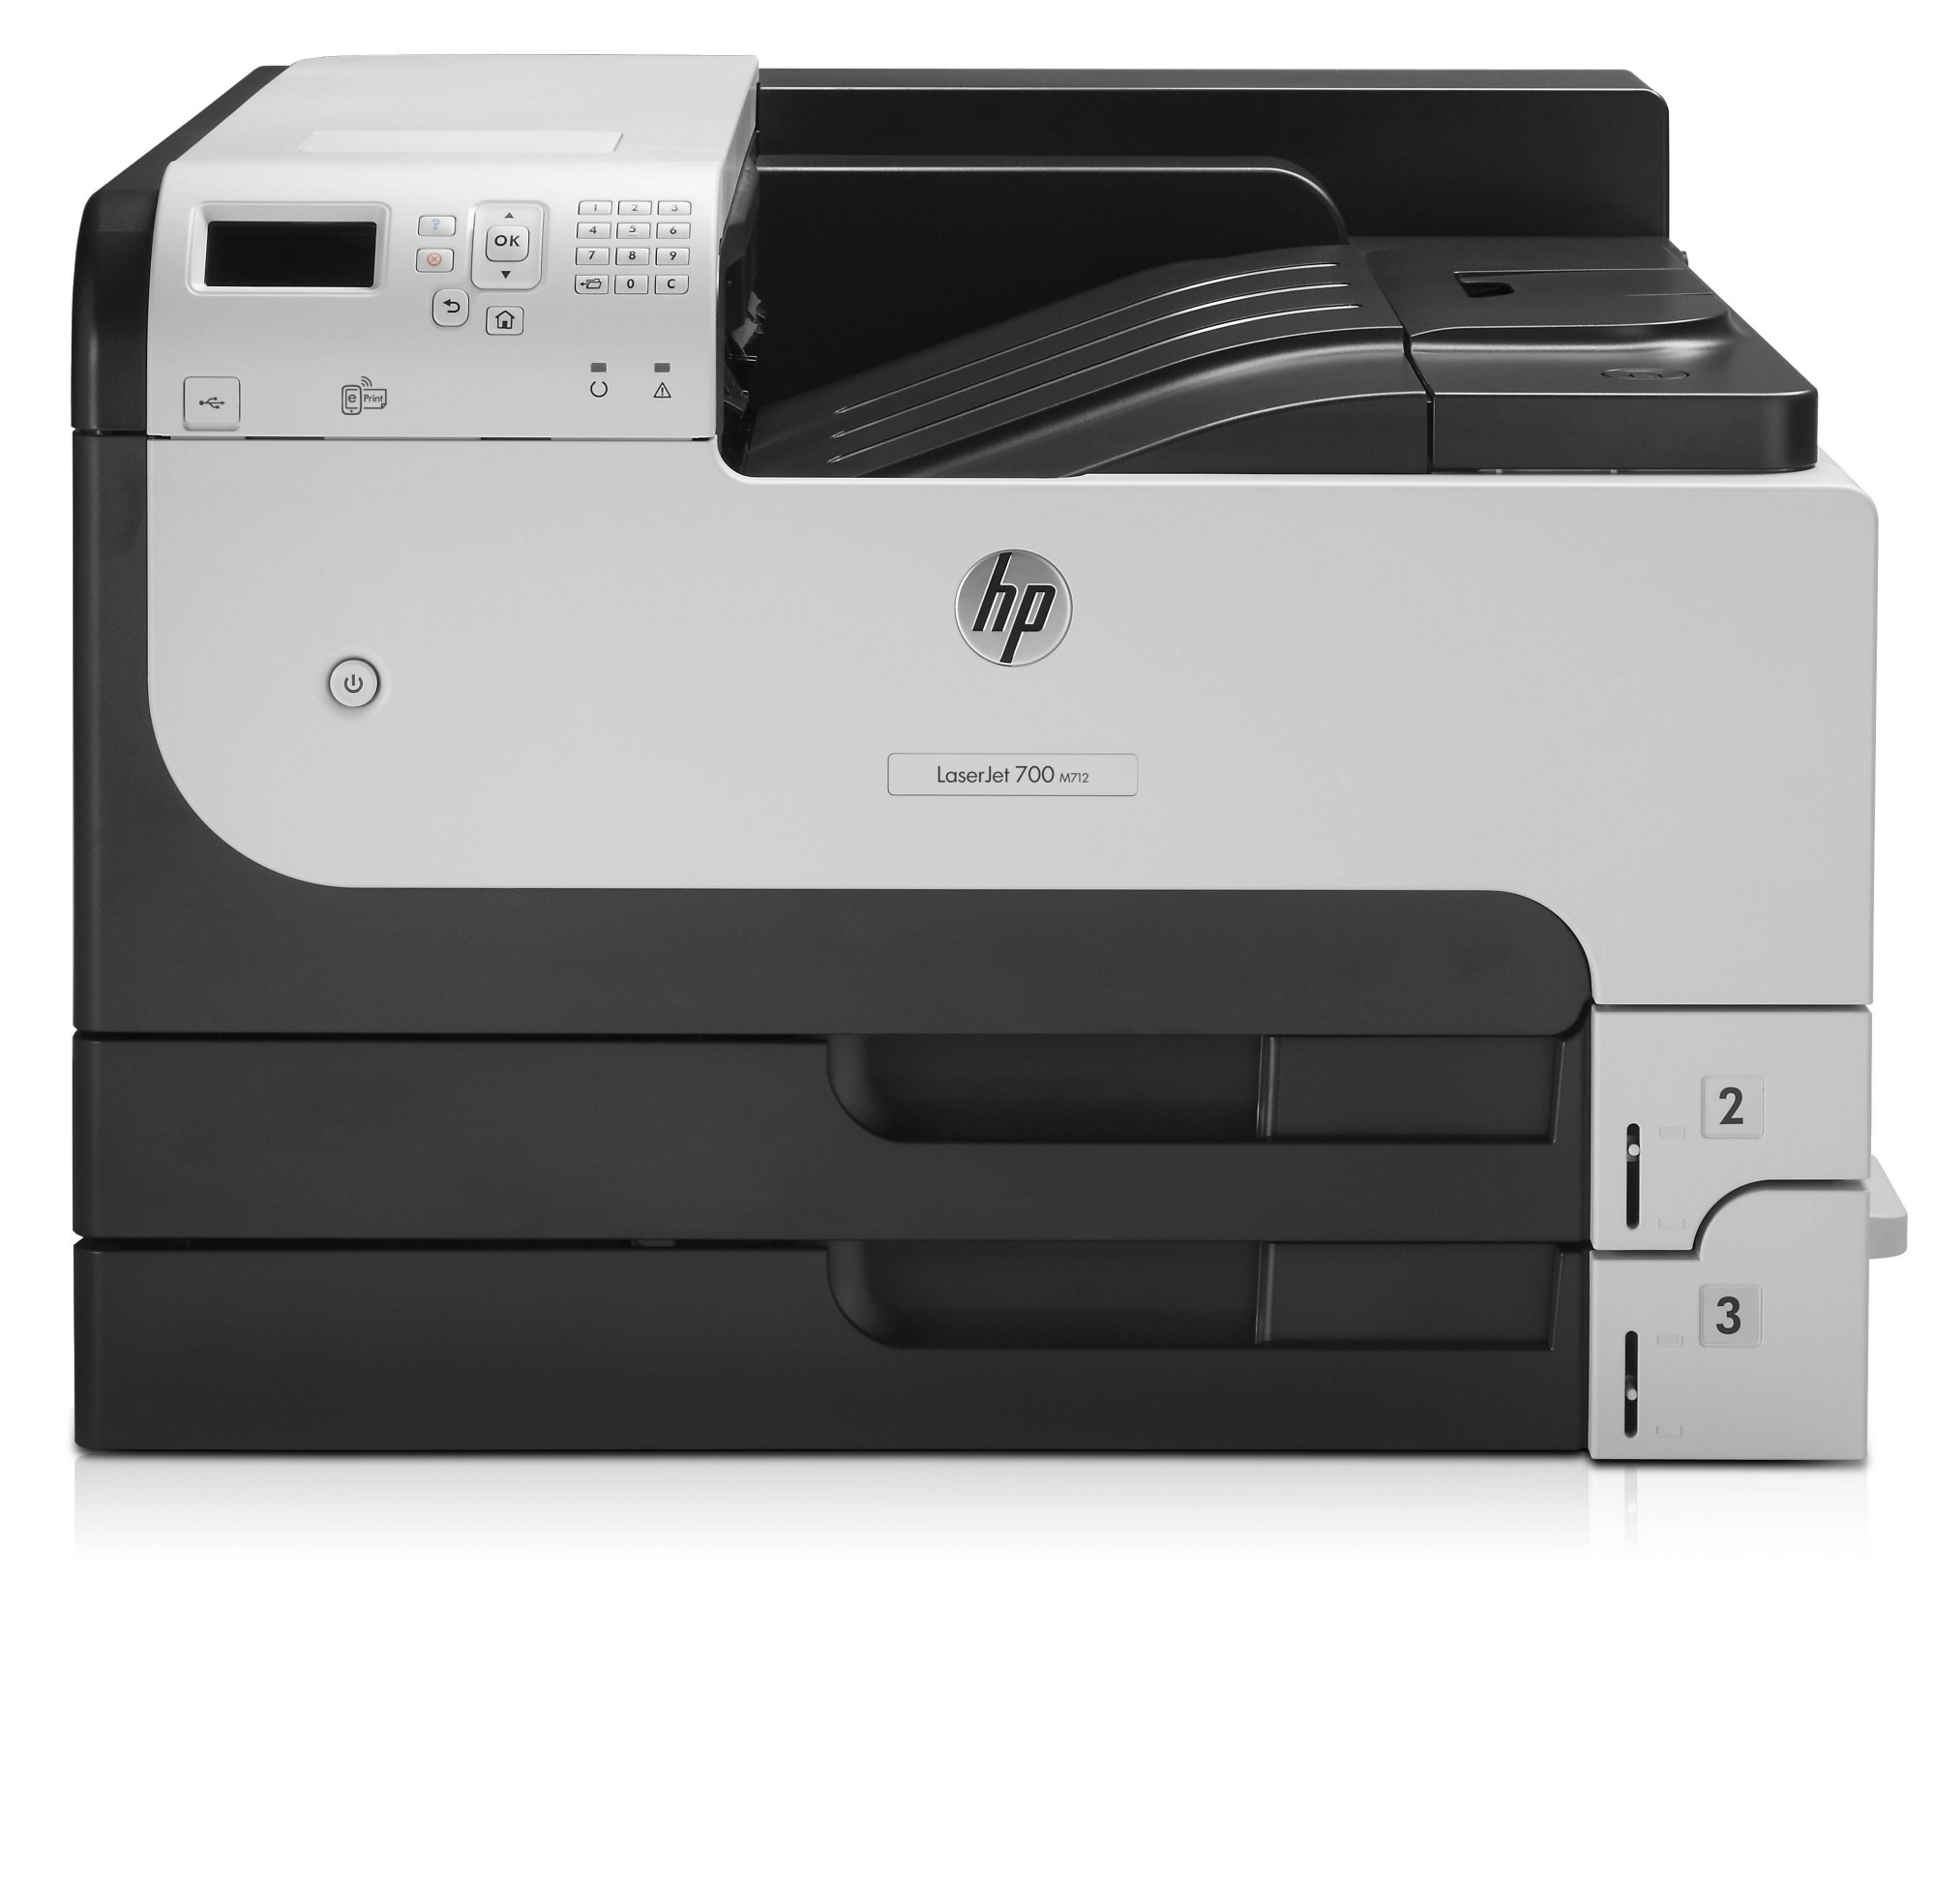 HP CF236A#B19 LASERJET ENTERPRISE 700 PRINTER M712DN